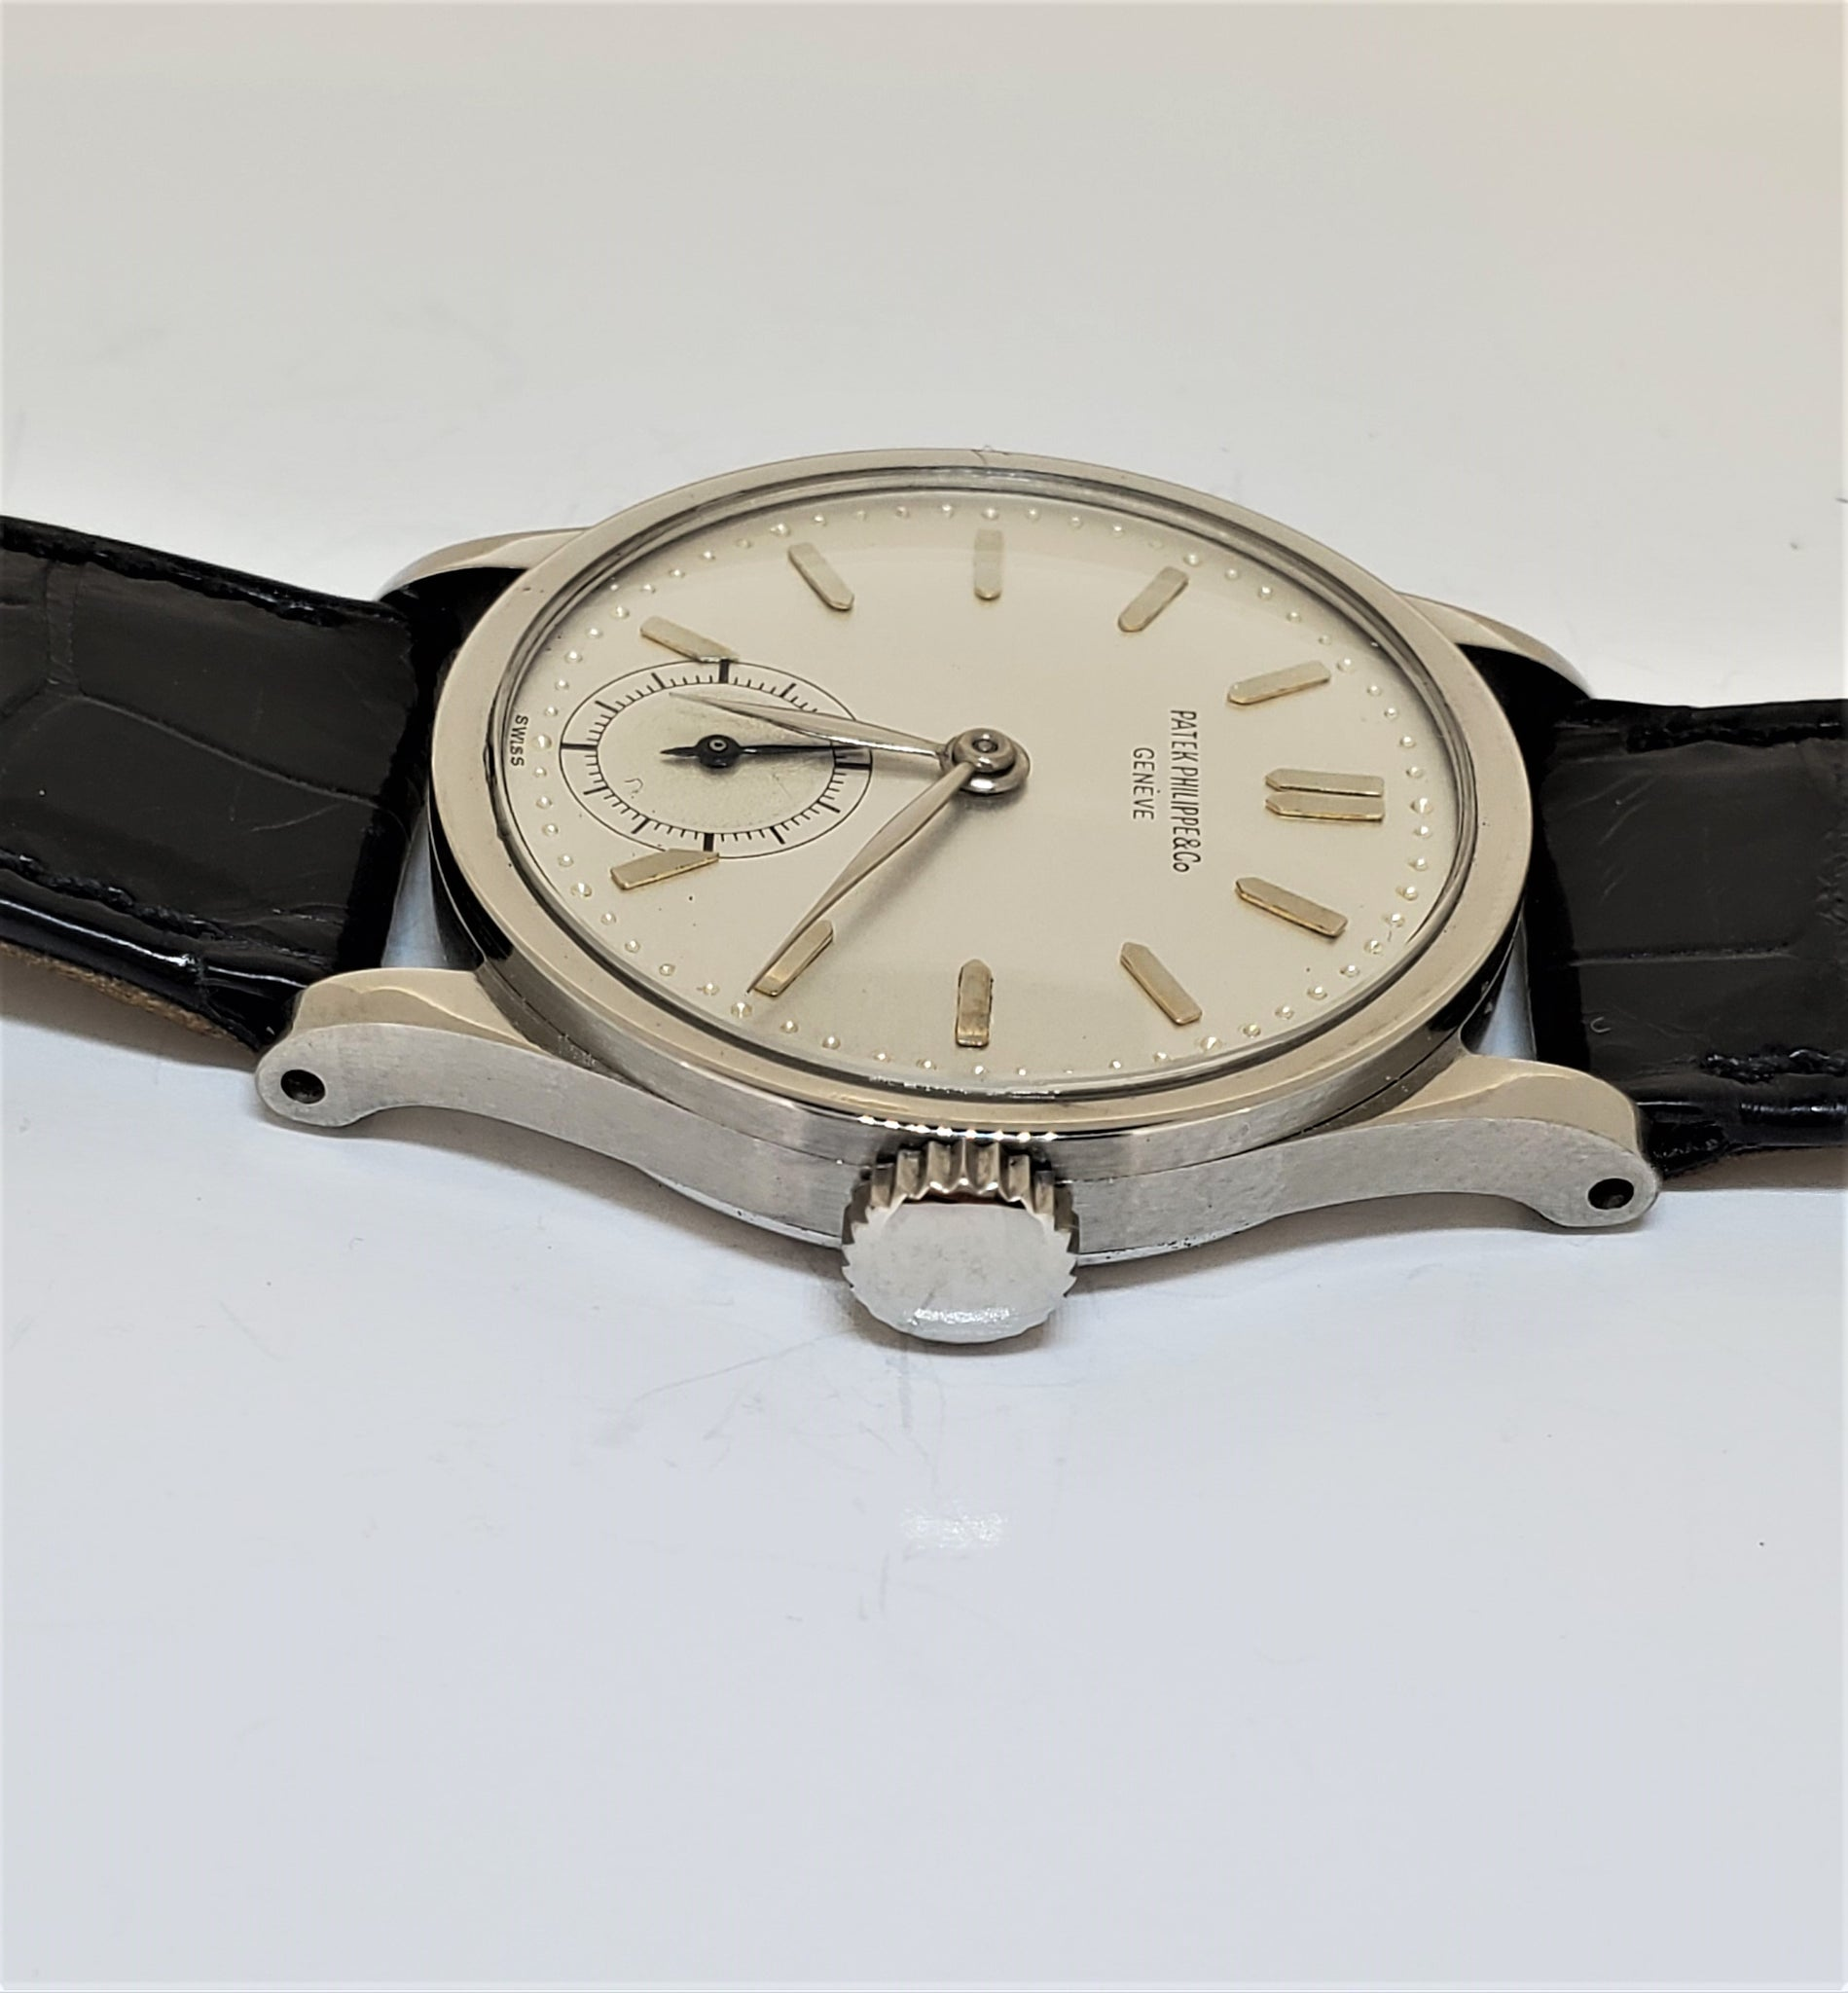 Patek Philippe 96A Stainless Steel Calatrava Watch